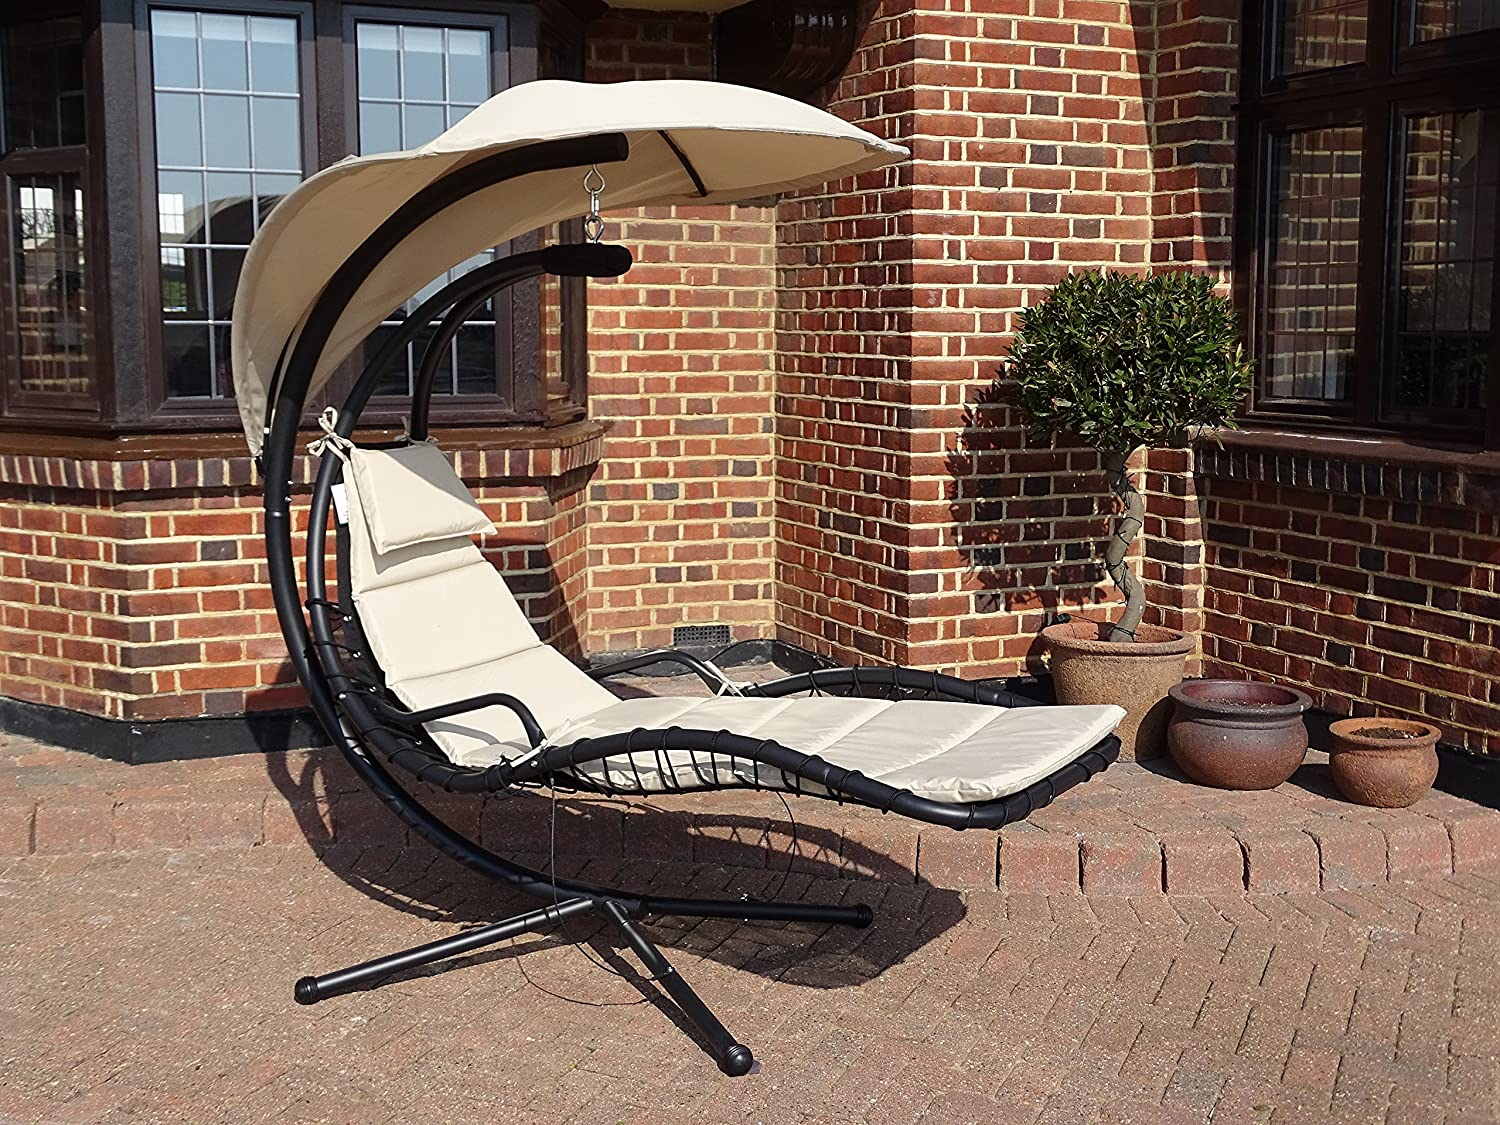 helicopter dream chair swing hammock replacement spare cushion in black or beige black amazoncouk garden outdoors